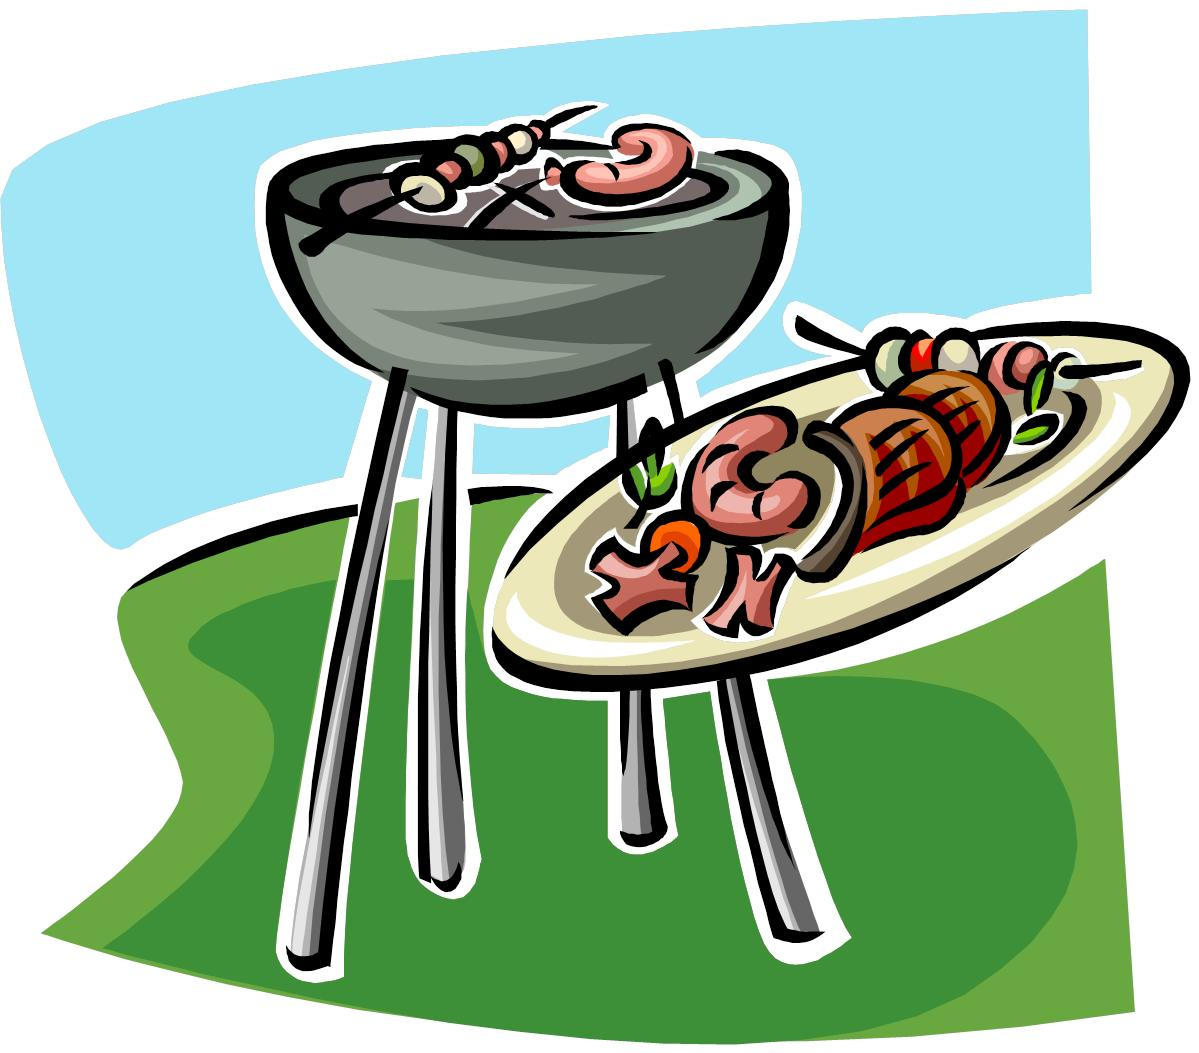 backyard barbecue clip art backyard backyard ideas blog rh oluyue com cookout clip art images cookout clipart black and white